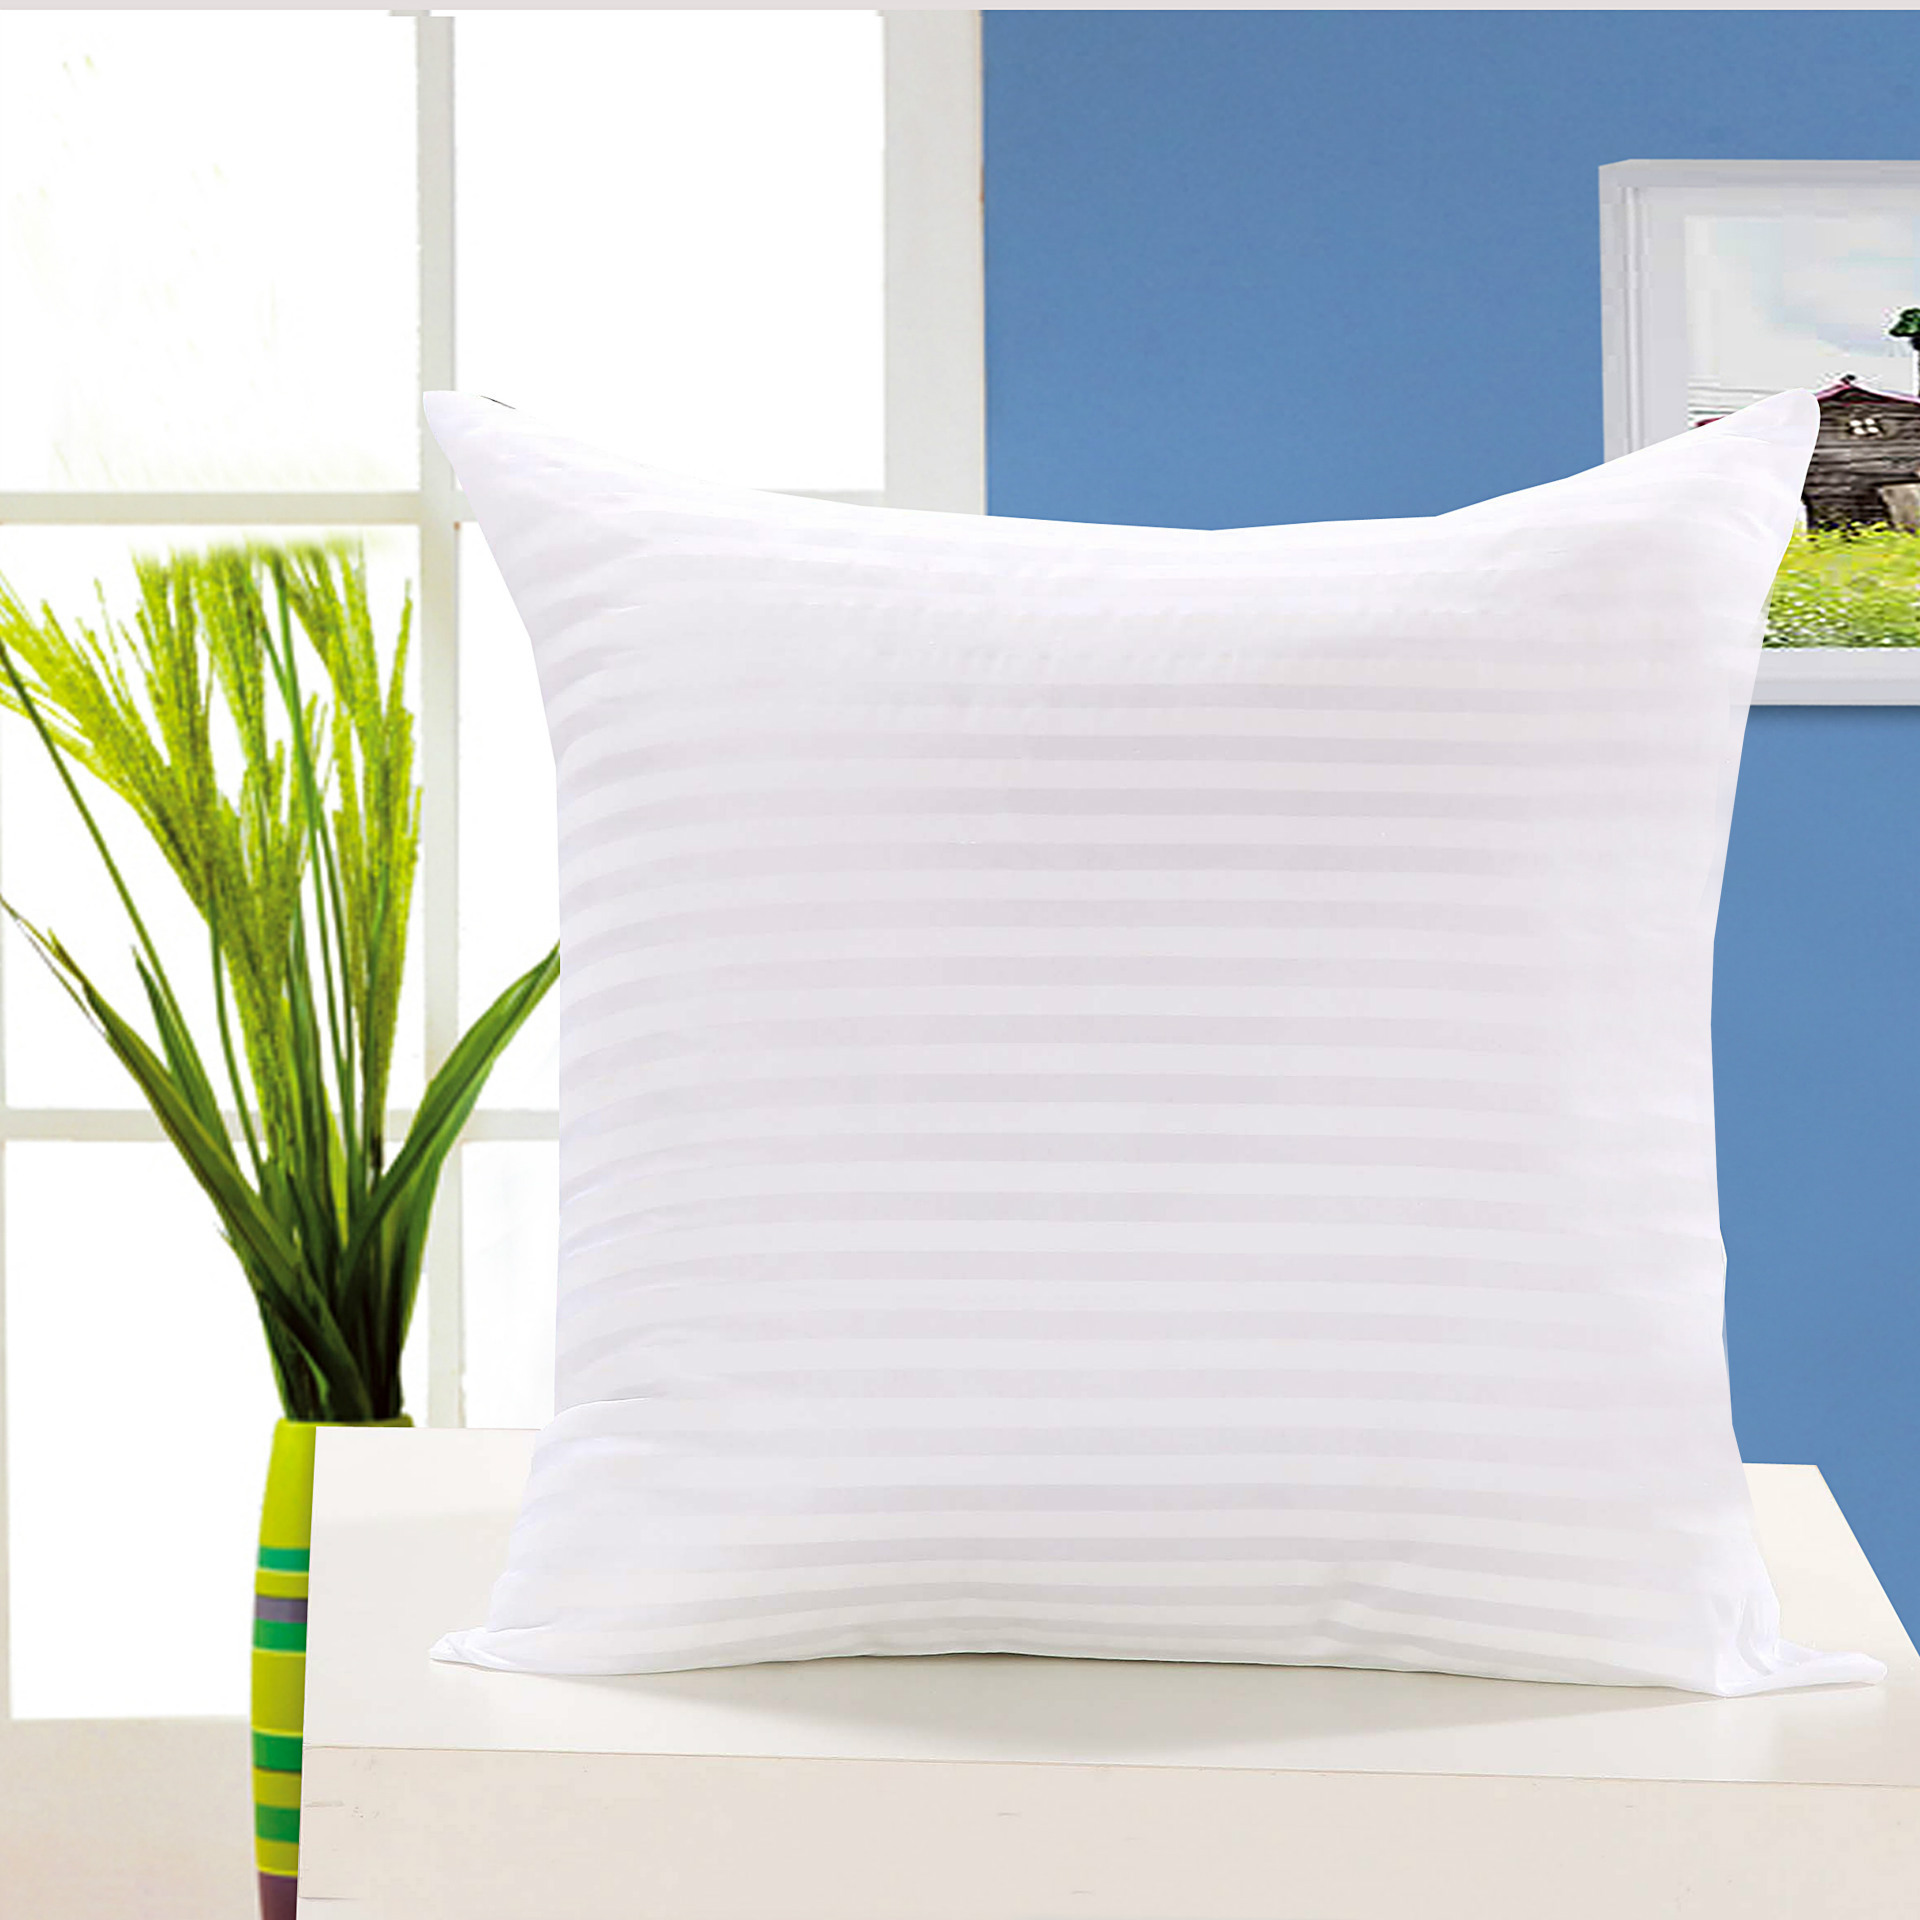 AIMENG Cushion pillow core 45*45 50 wholesale interwoven cotton pillow vacuum packaging